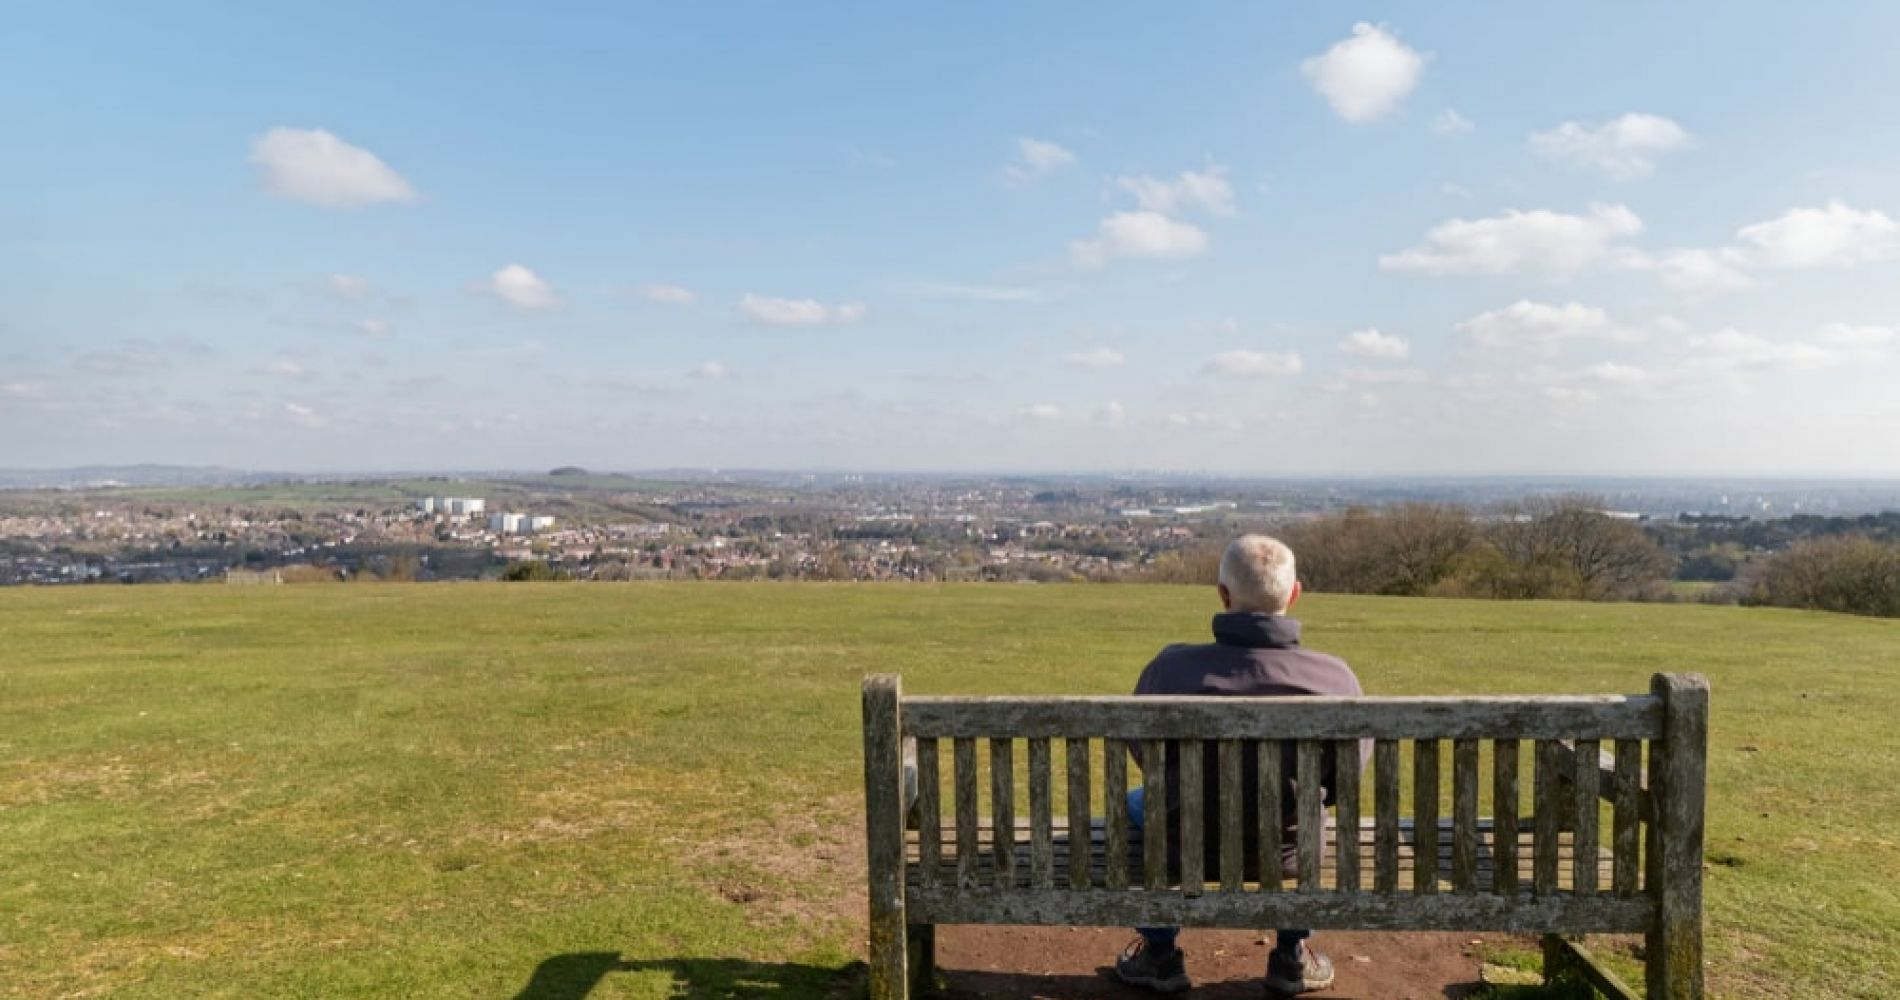 Enjoy the Views of the City from Lickey Hills in Birmingham